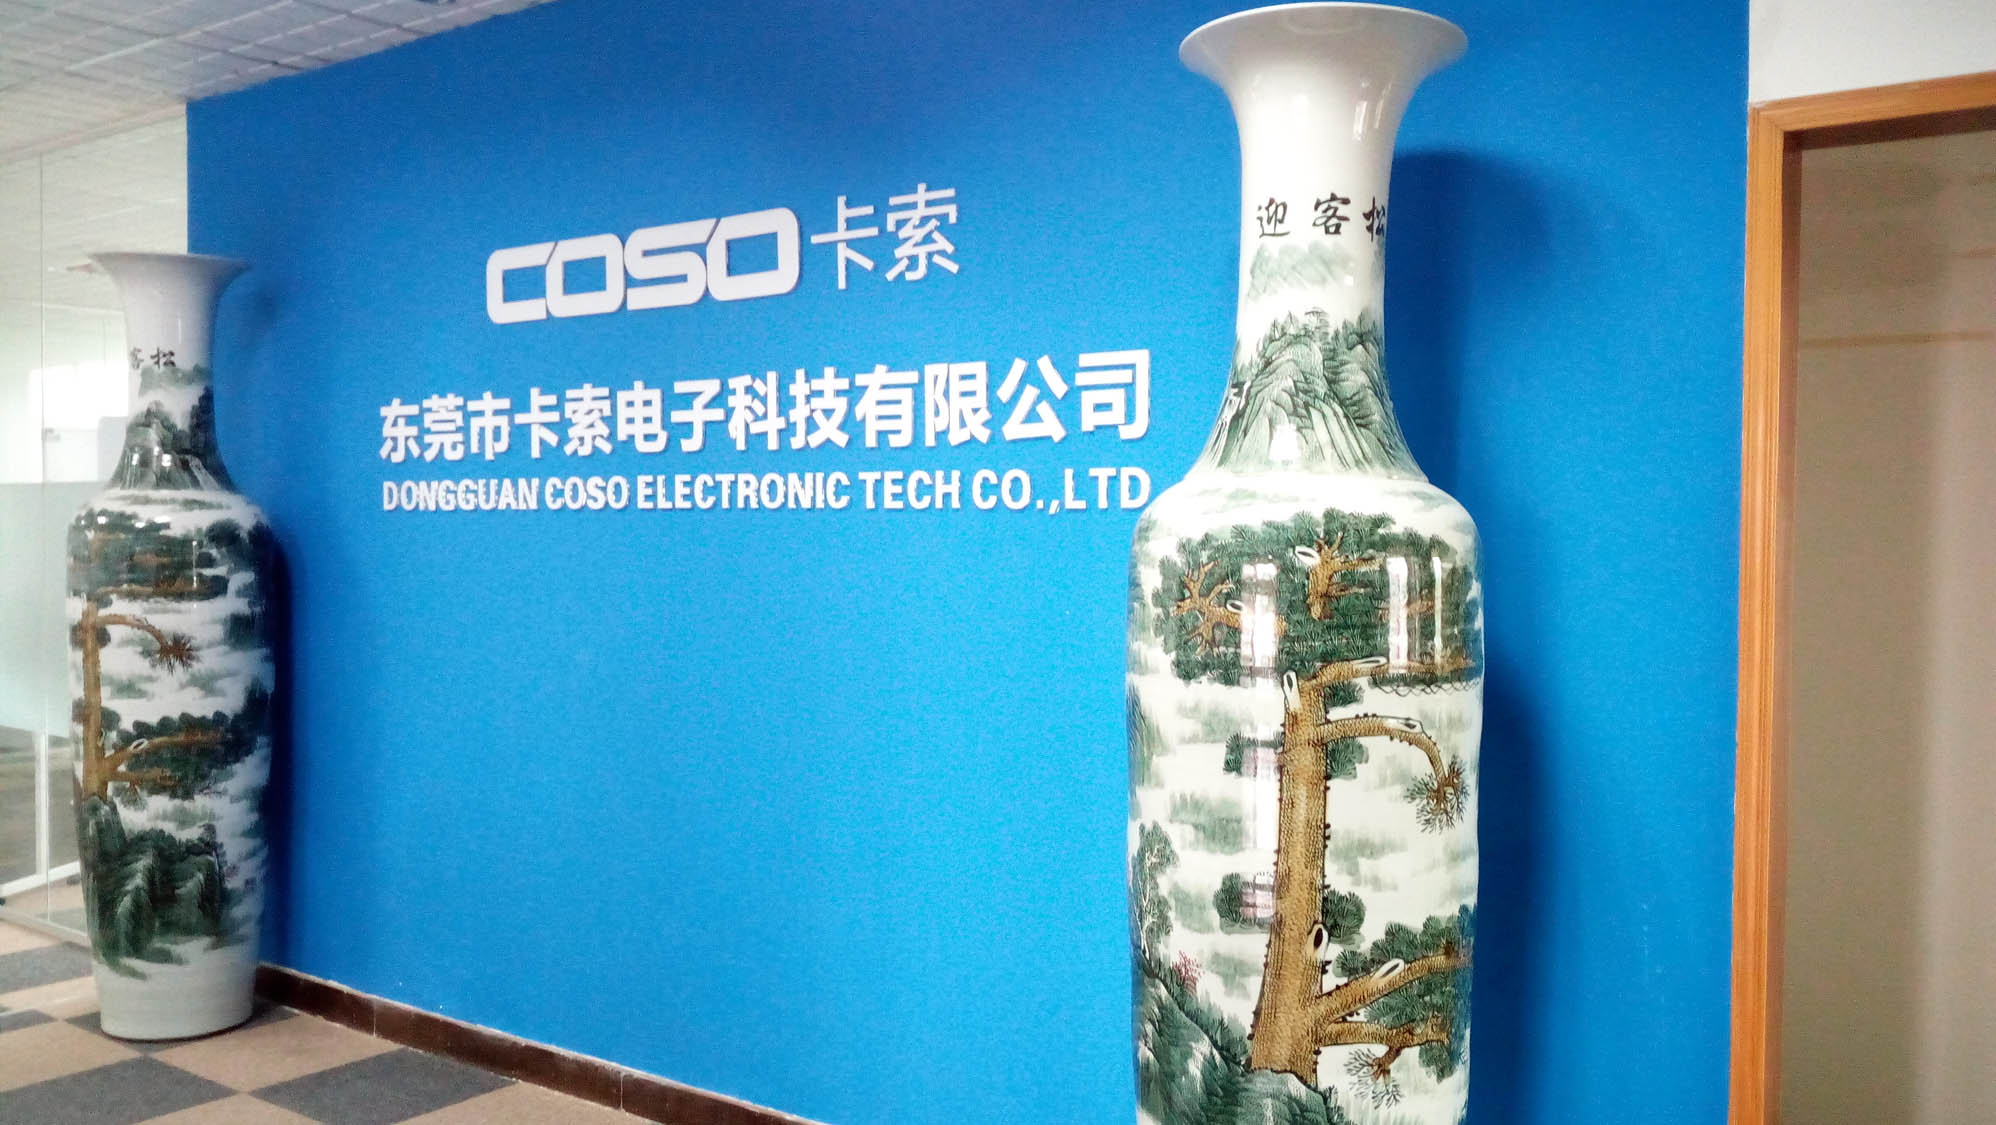 Dongguan COSO Electronic Technology Co., Ltd.